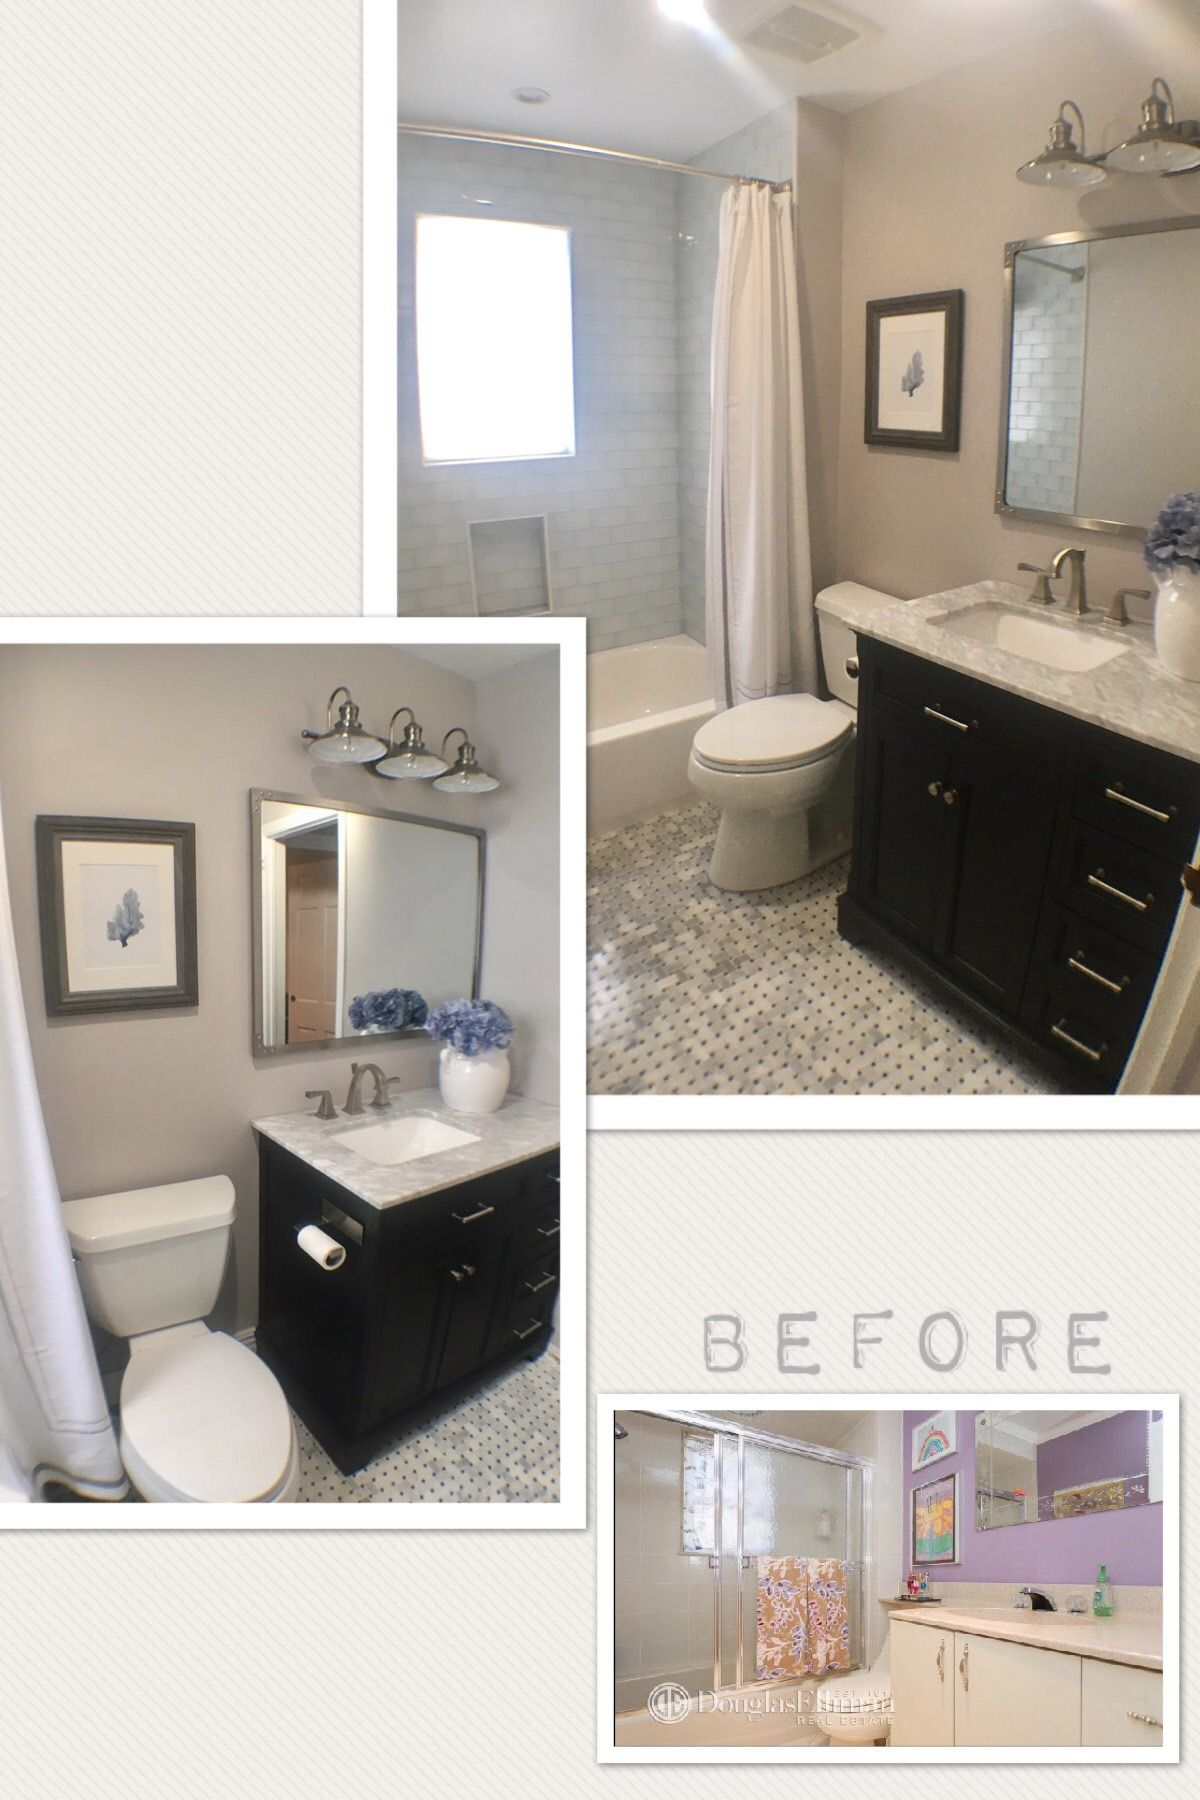 Bathroom makeover wall color is benjamin moore wish from lowes basketweave tile on